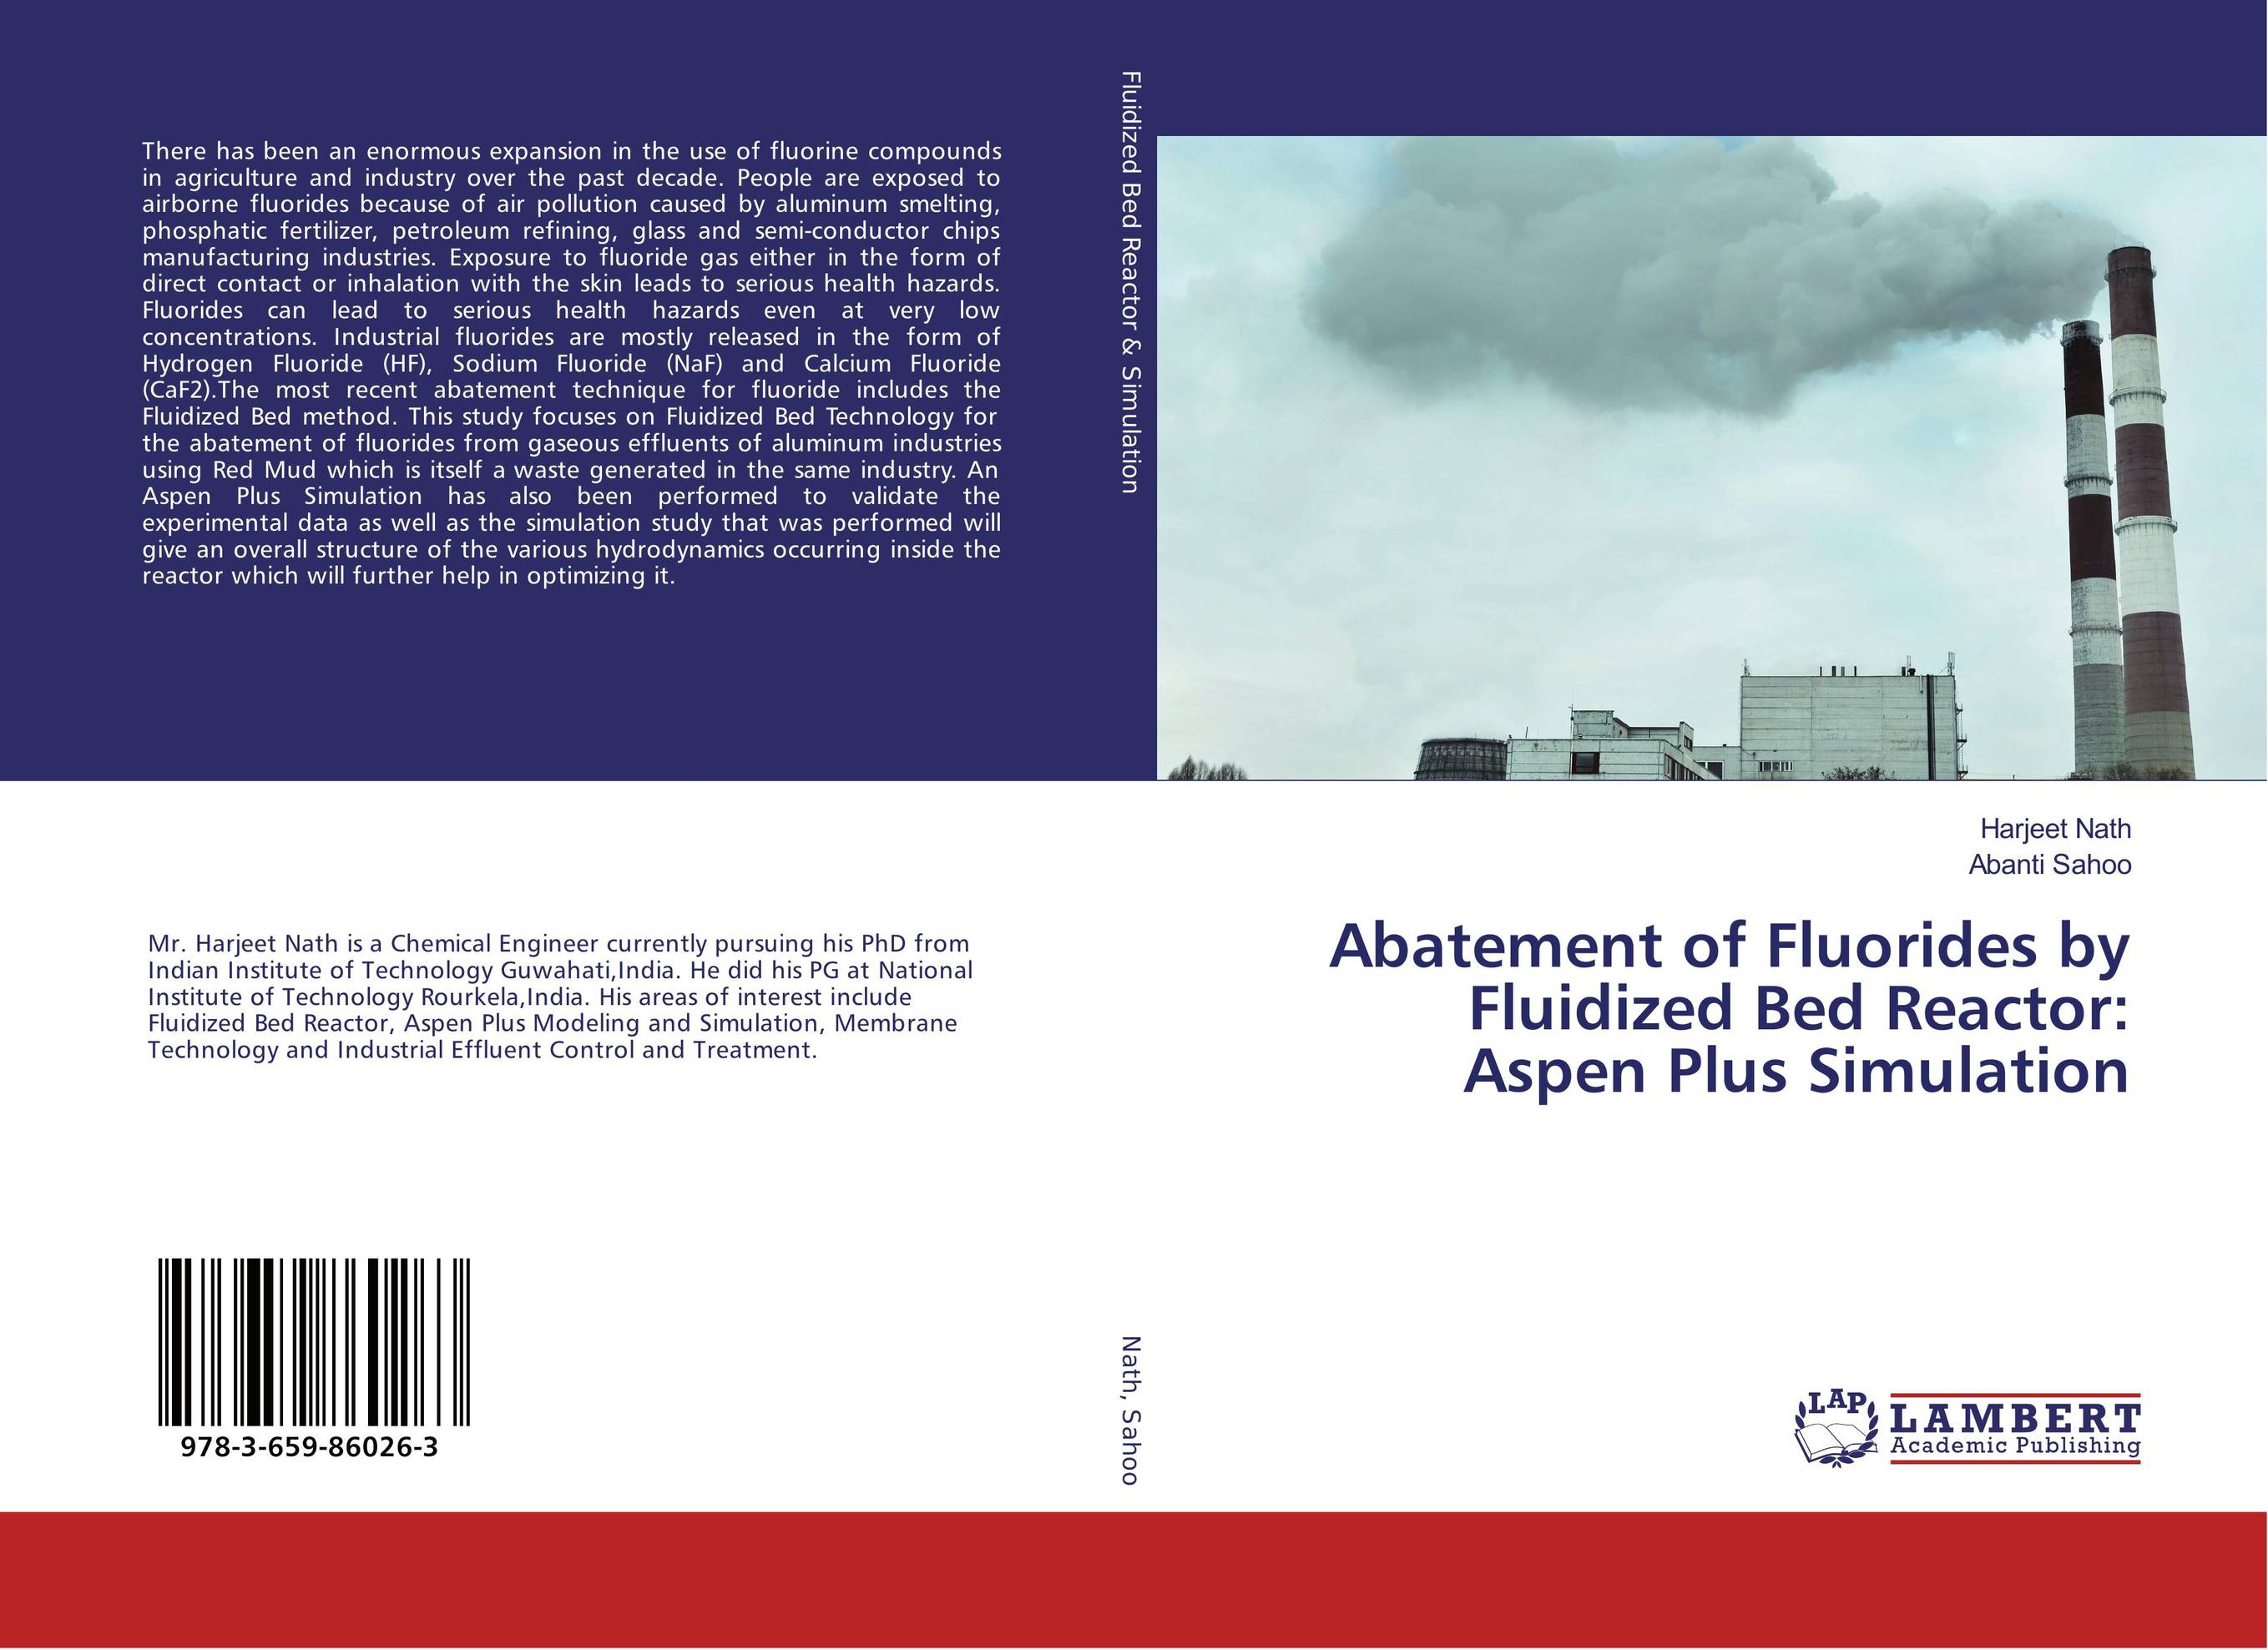 Abatement of Fluorides by Fluidized Bed Reactor: Aspen Plus Simulation fluorides and non skeletal fluorosis